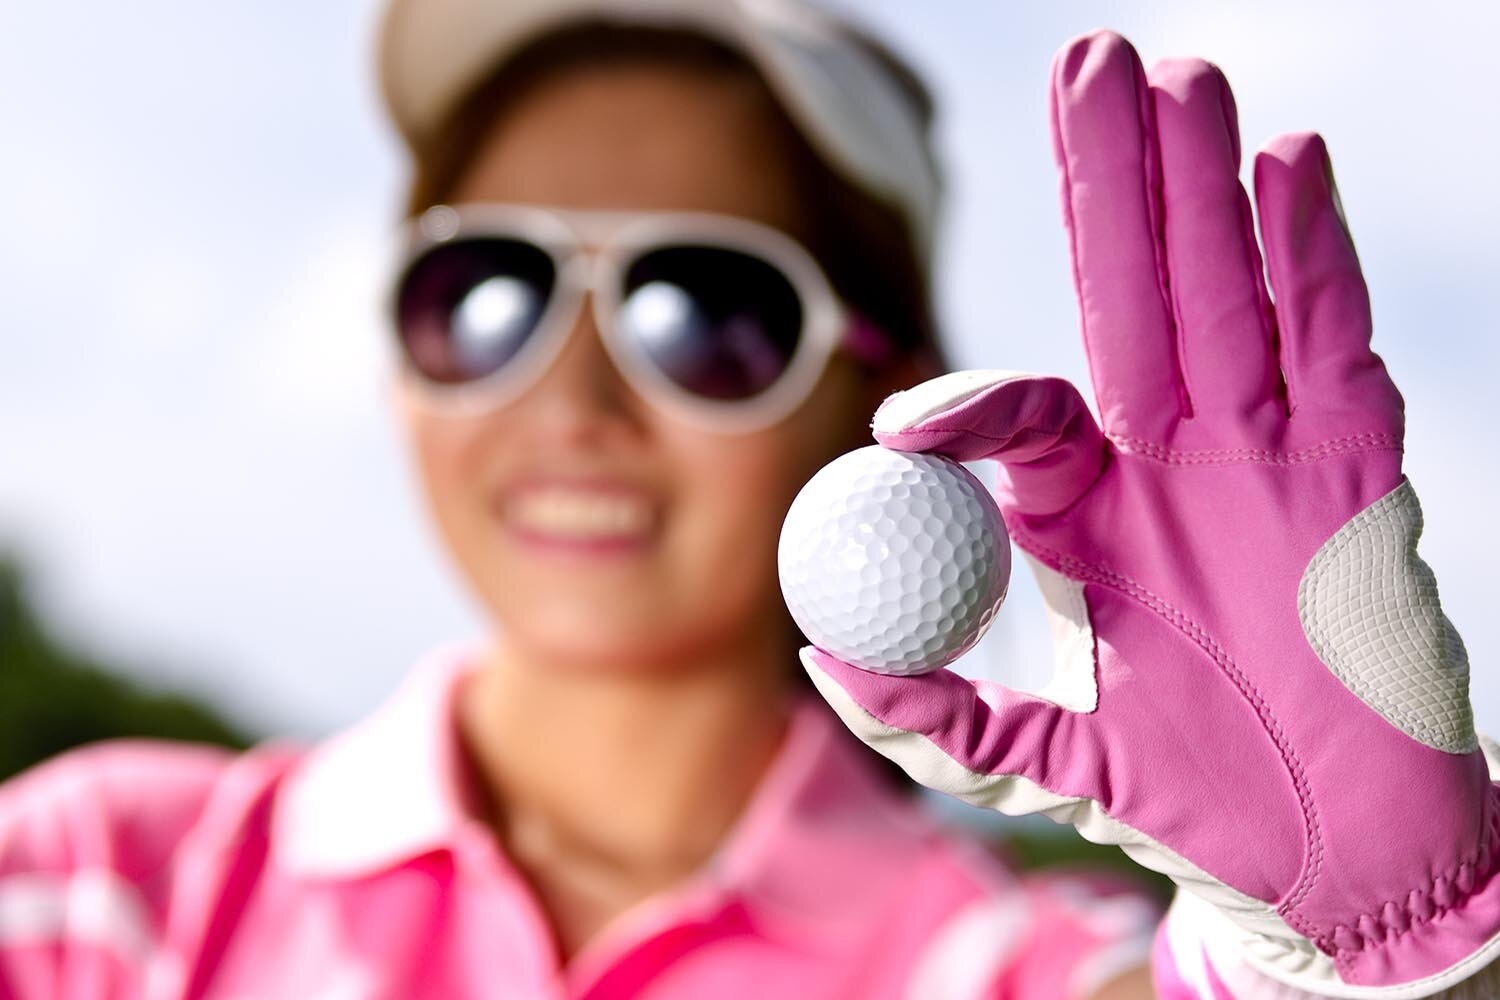 How To Choose Sunglasses For Golf: Lenses For The Bright Sun